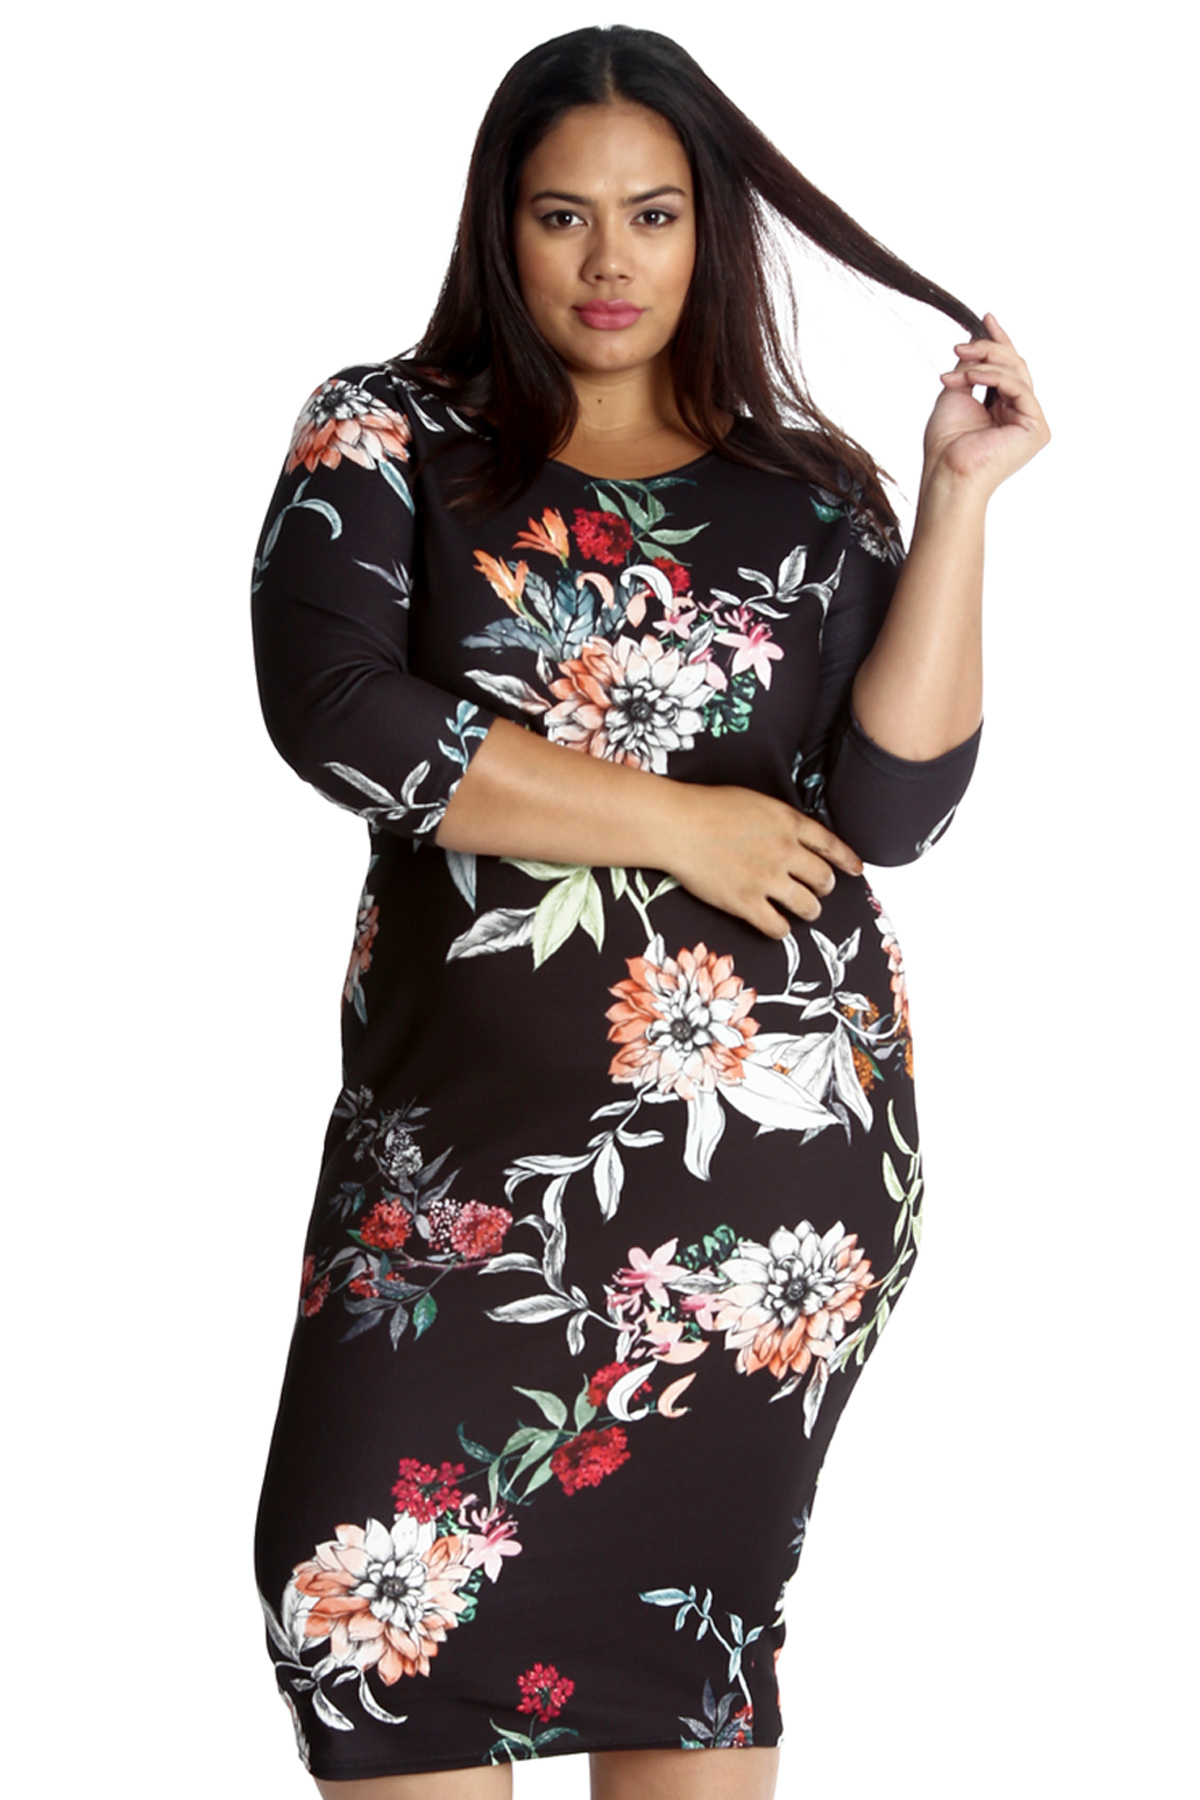 e0537e11acc Details about New Ladies Dress Plus Size Womens Floral Bodycon Knee Length  Midi Style Nouvelle